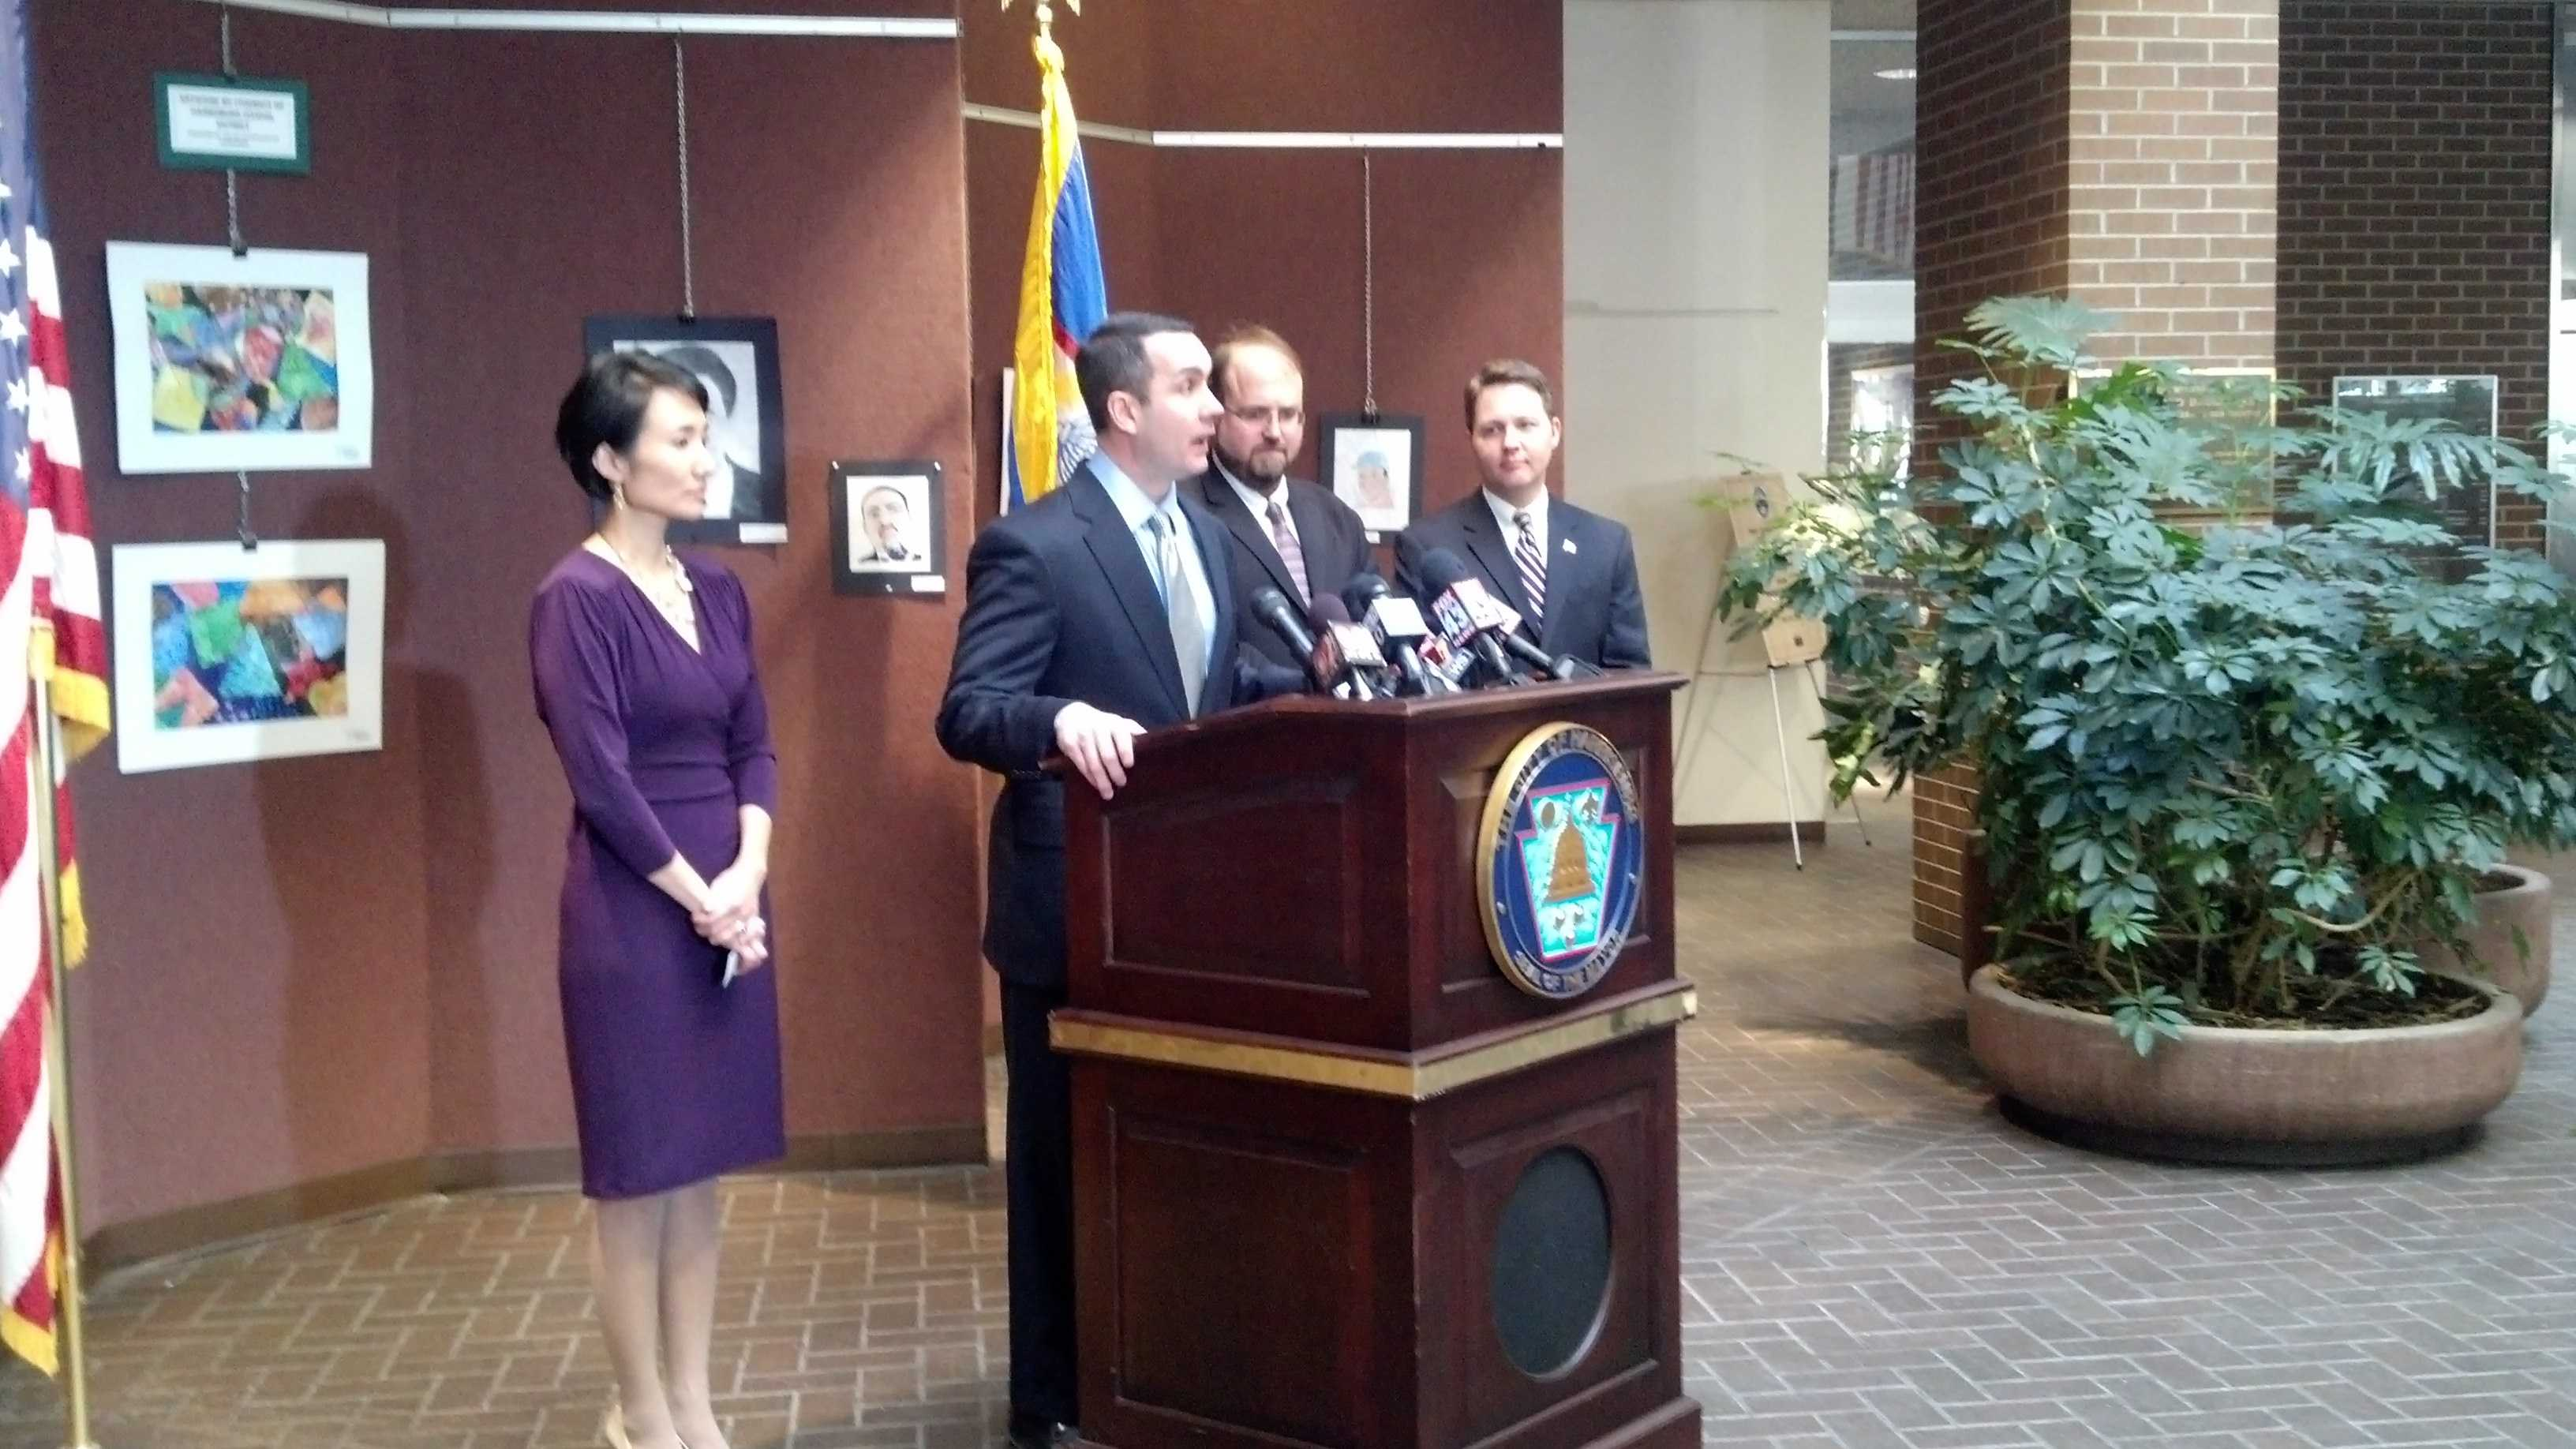 Auditor General Eugene DePasquale makes the audit announcement Monday afternoon at a news conference.